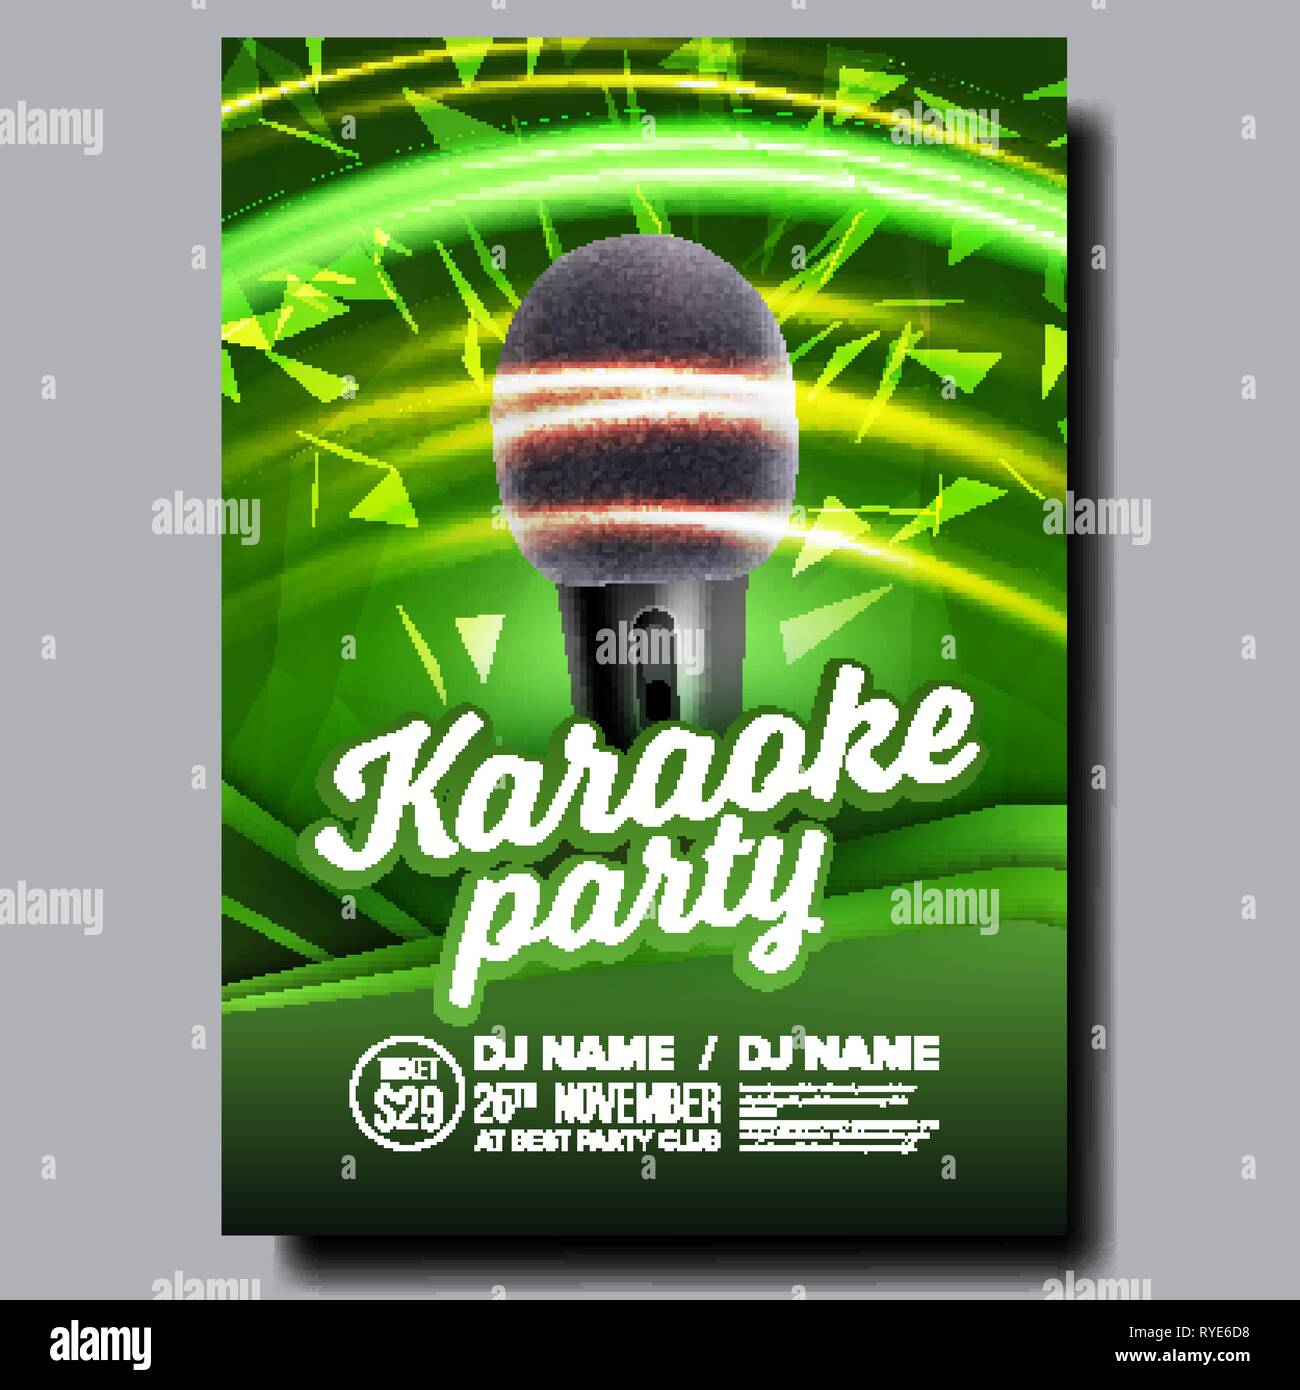 Karaoke Poster Vector  Disco Banner  Karaoke Voice Equipment  Sing